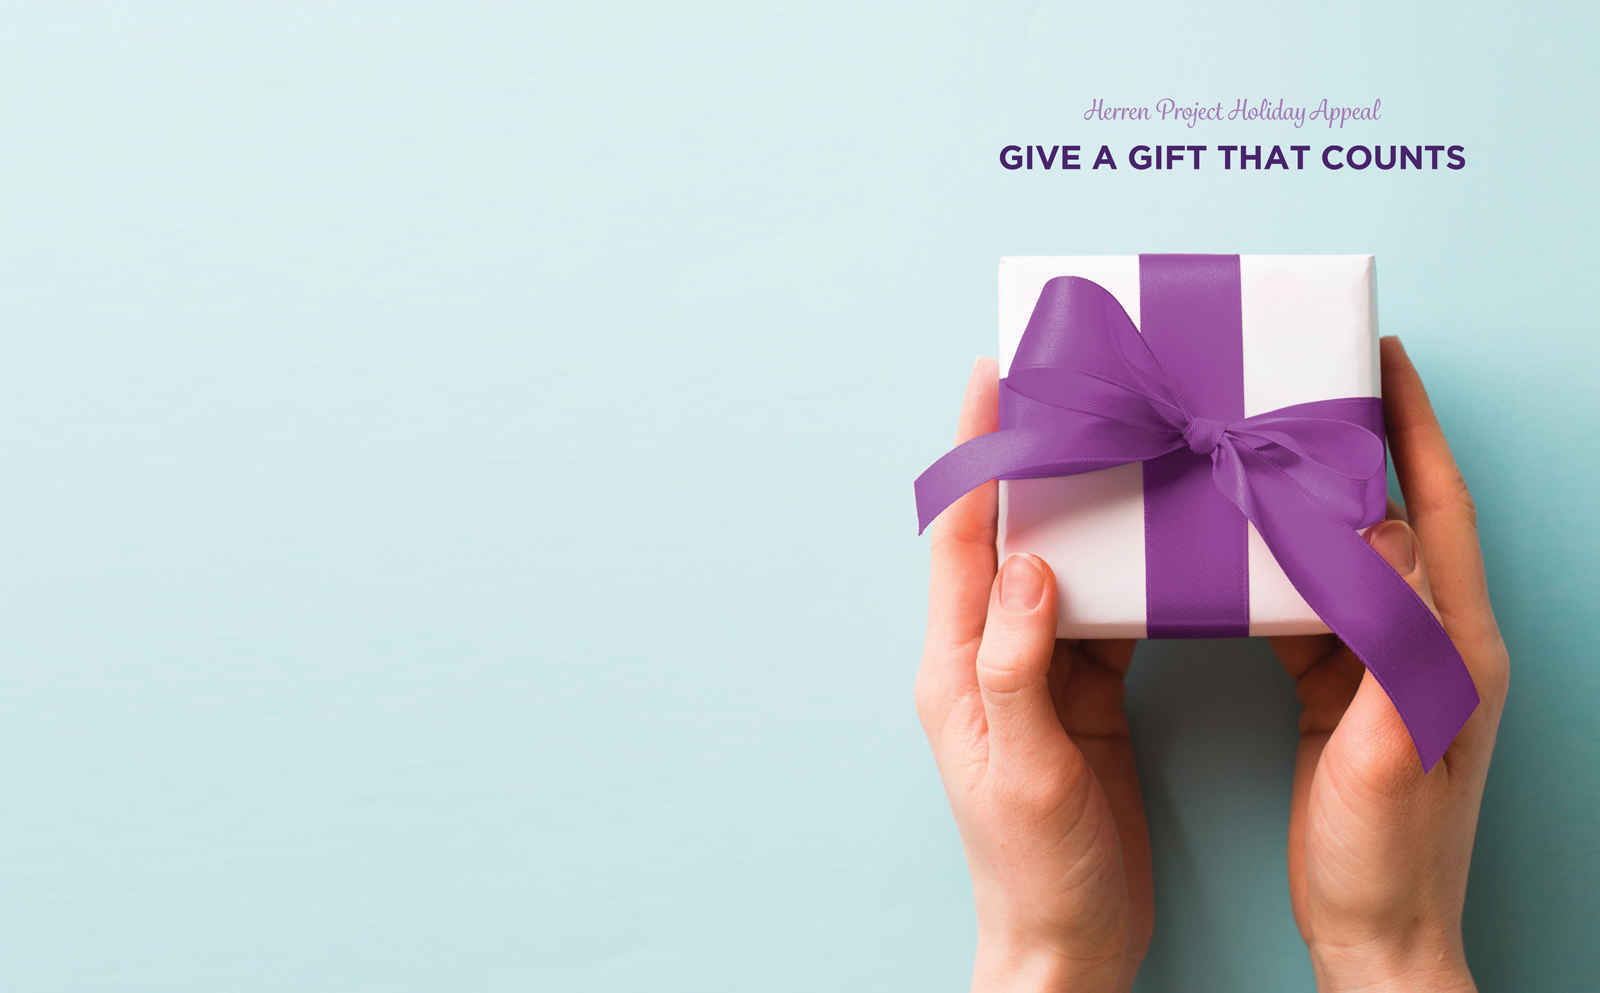 Your gift matters! image